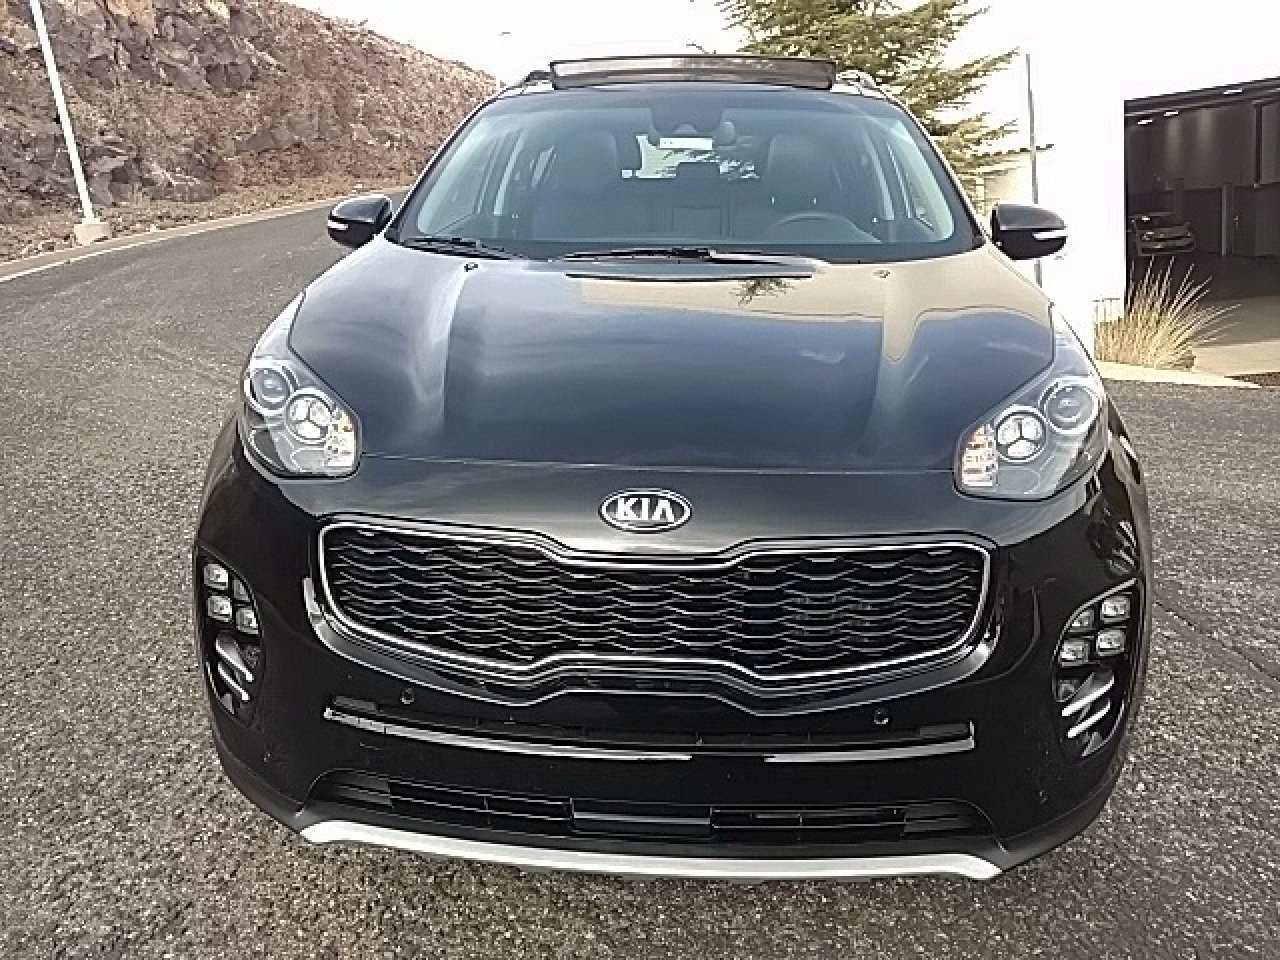 59 Gallery of Best 2019 Kia Sportage Sx Turbo Review Performance And New Engine Release for Best 2019 Kia Sportage Sx Turbo Review Performance And New Engine